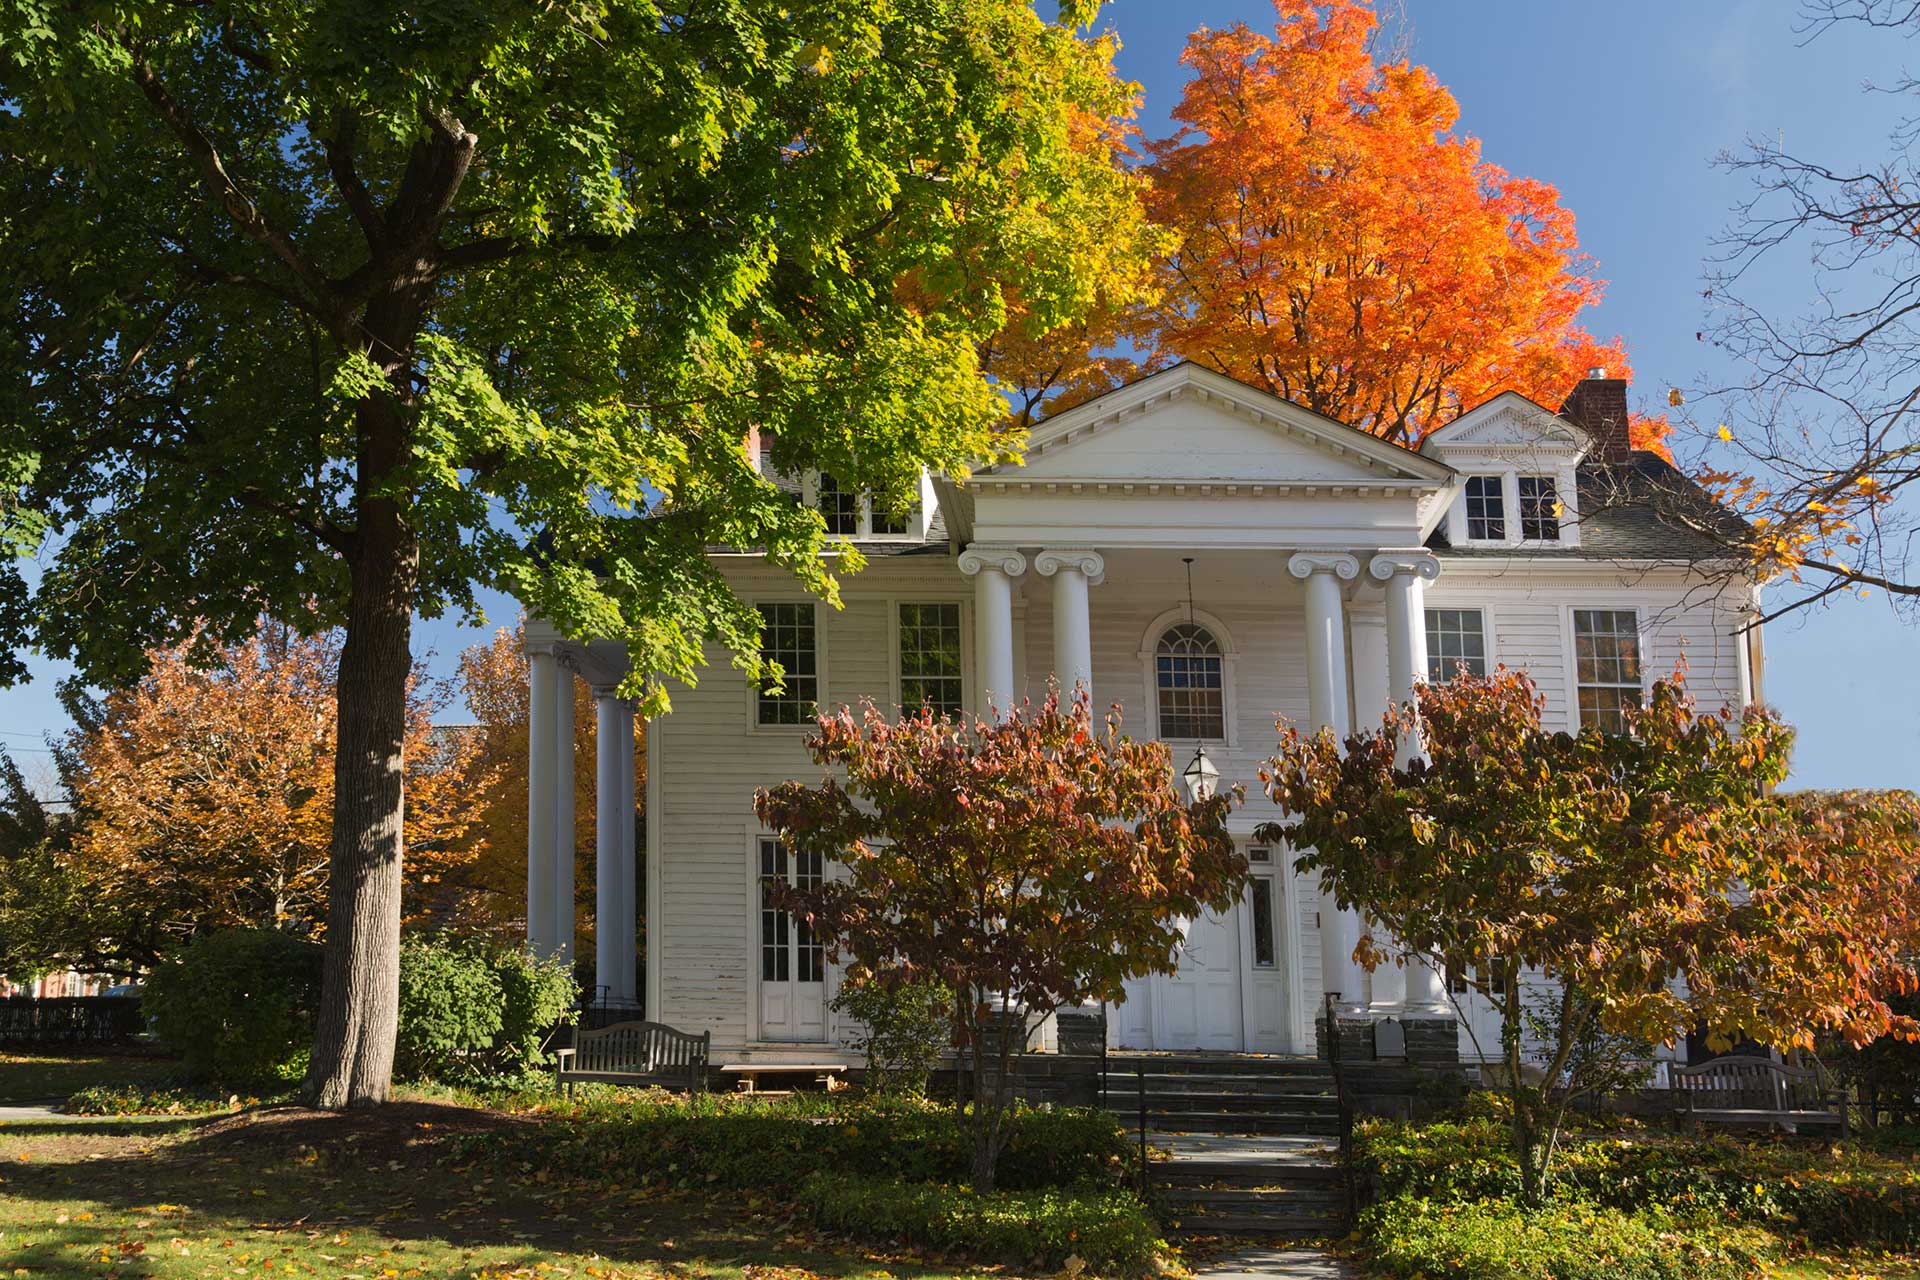 the large white community house surrounded by fall trees